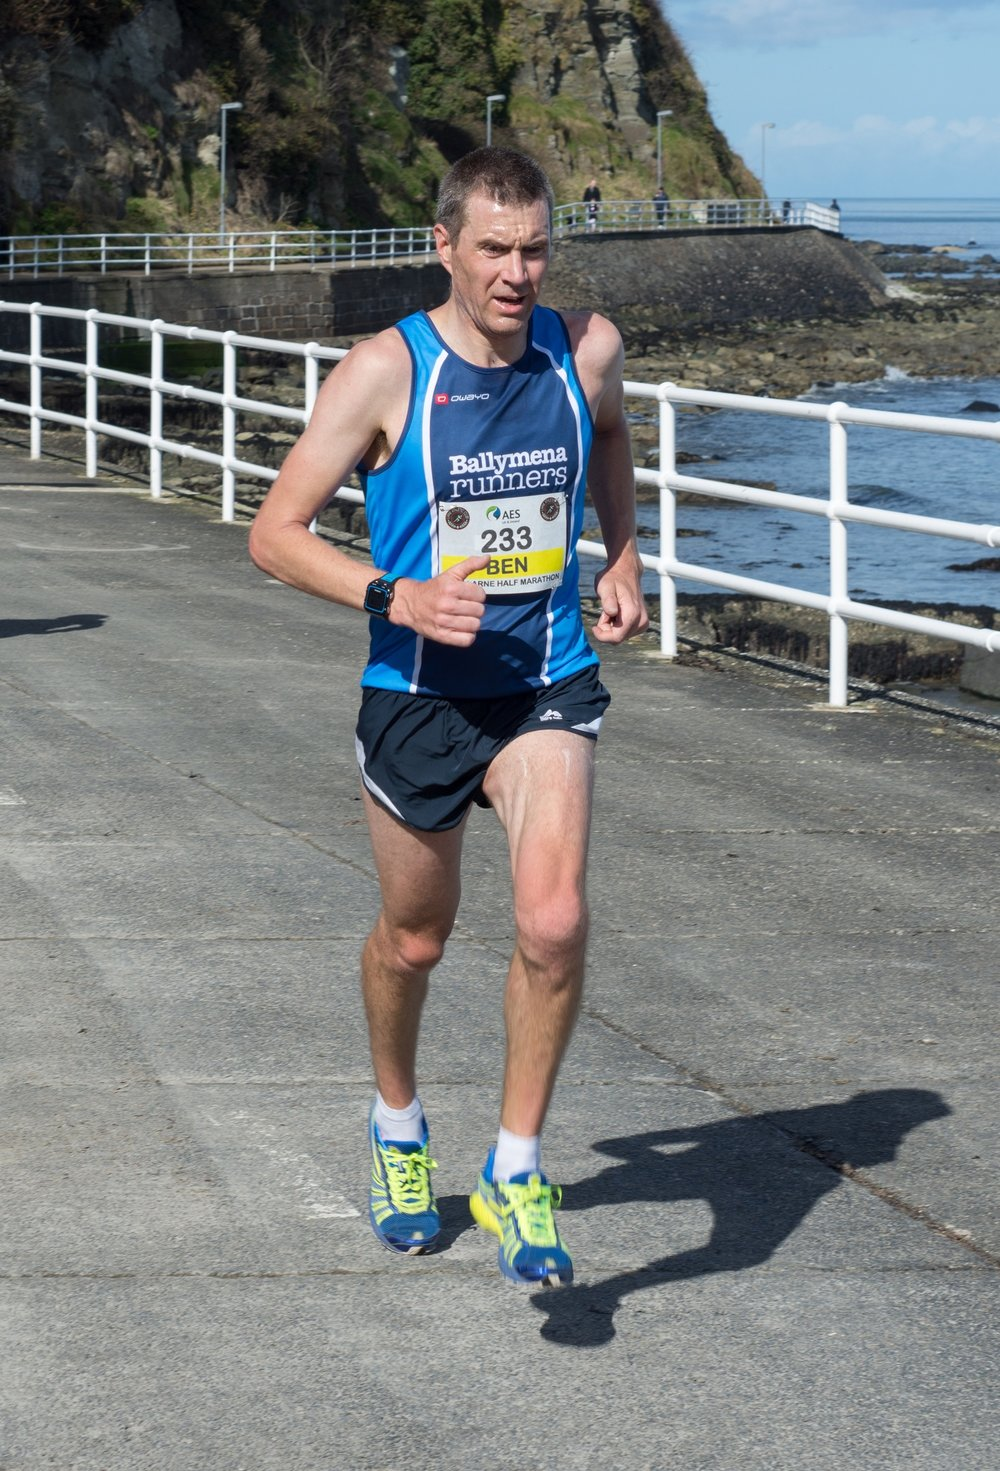 Ben Morrow was the first Ballymena Runner home in Larne